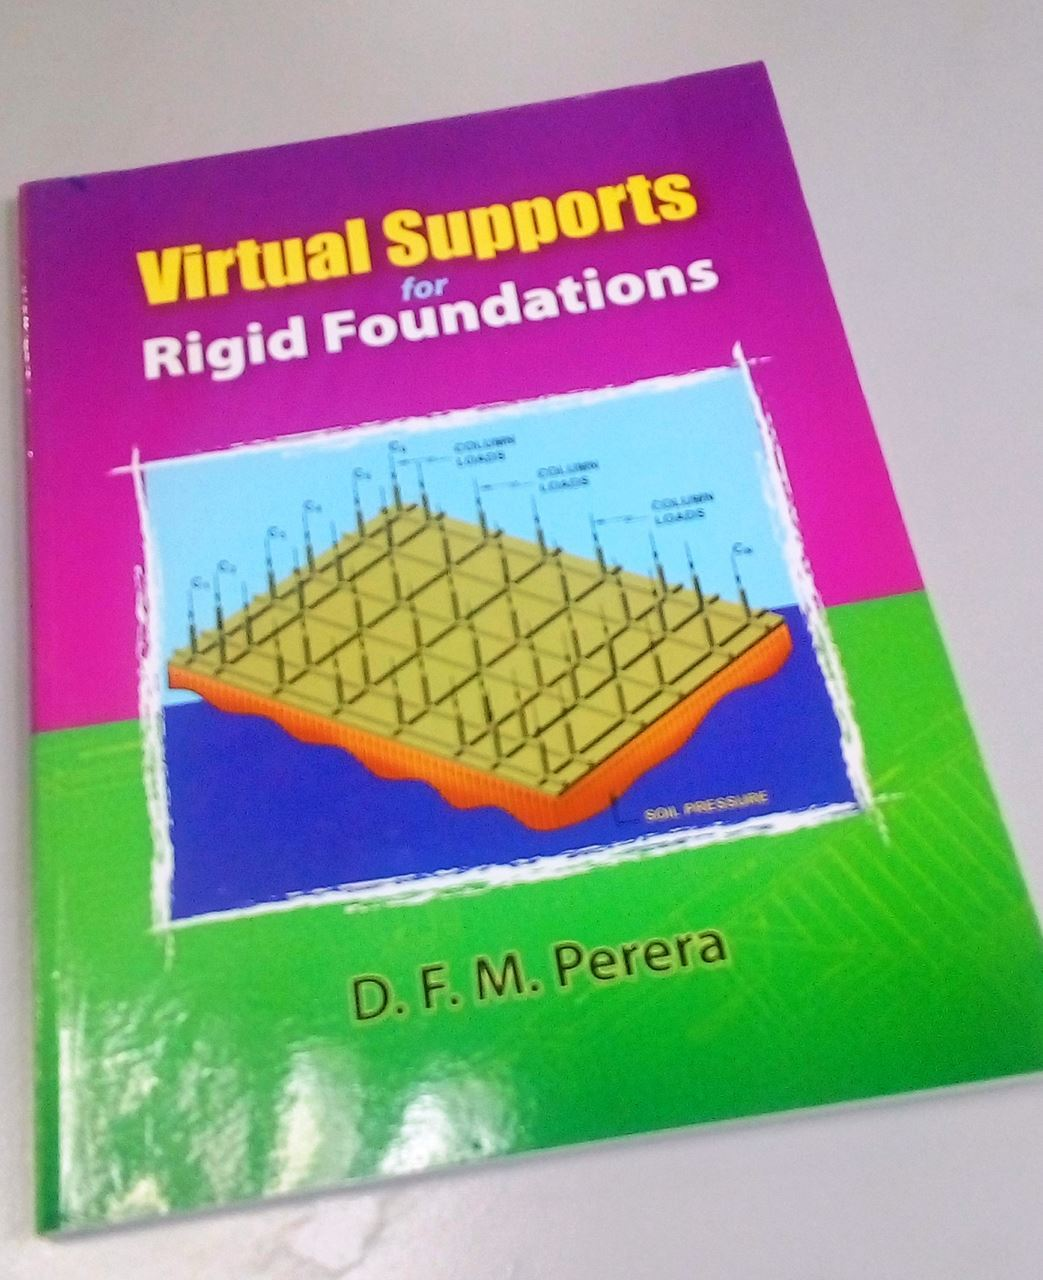 Virtual Supports for Rigid Foundations